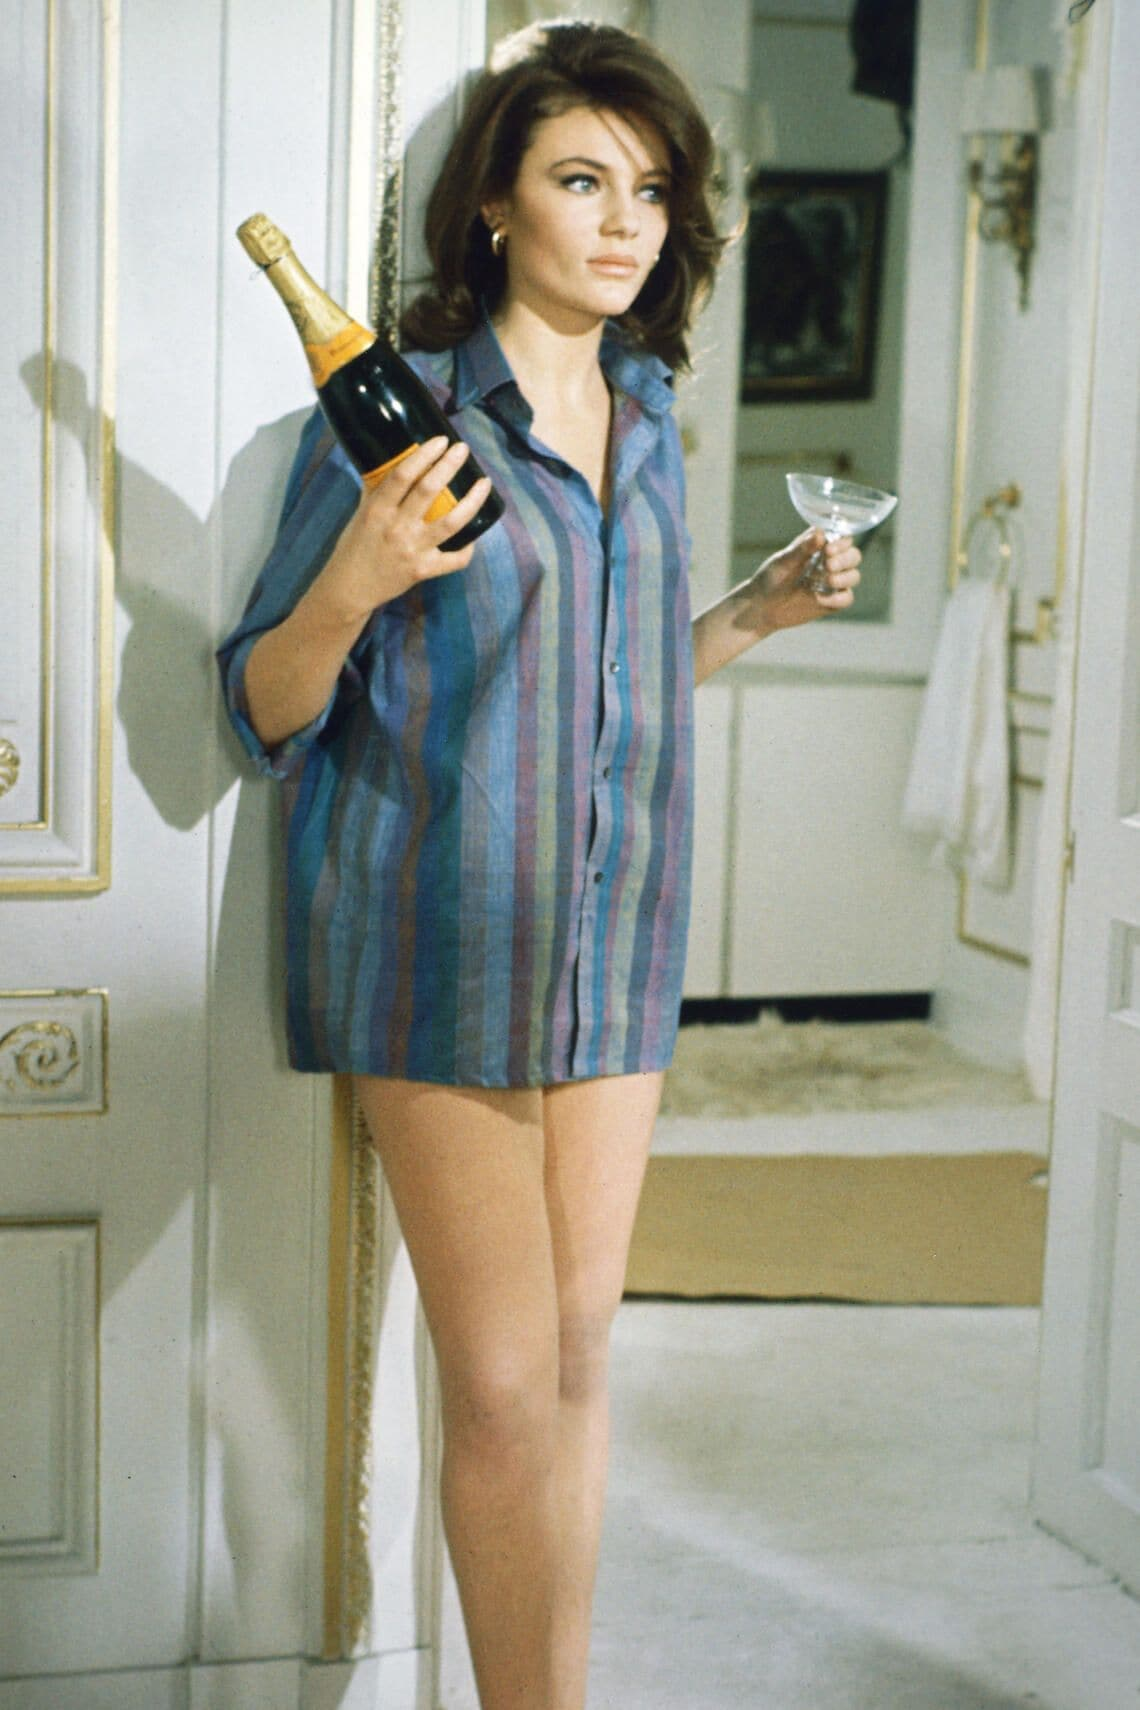 Jacqueline Bisset, British actress, wearing a shirt with vertical stripes, and holding a bottle of champagne and a champagne coupe, in a publicity still issued for the film, 'Bullitt', 1968. The thriller, directed by Peter Yates (1929-2011), starred Bisset as 'Cathy'. (Photo by Silver Screen Collection/Getty Images)